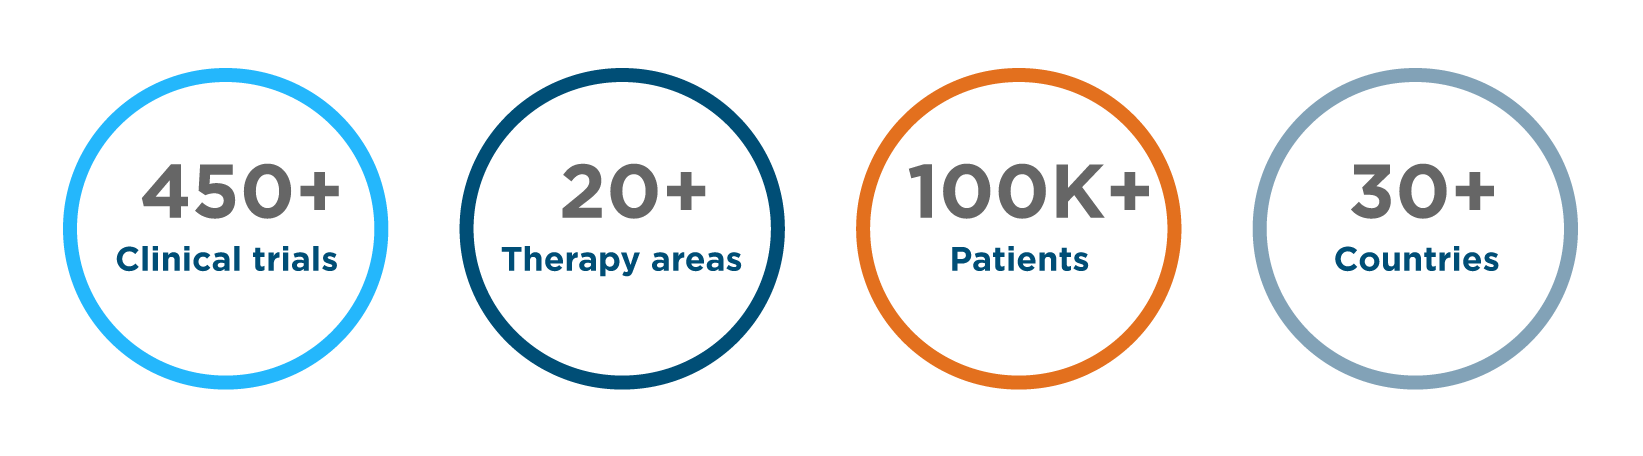 Therapeutic areas – Clinical trials CRO